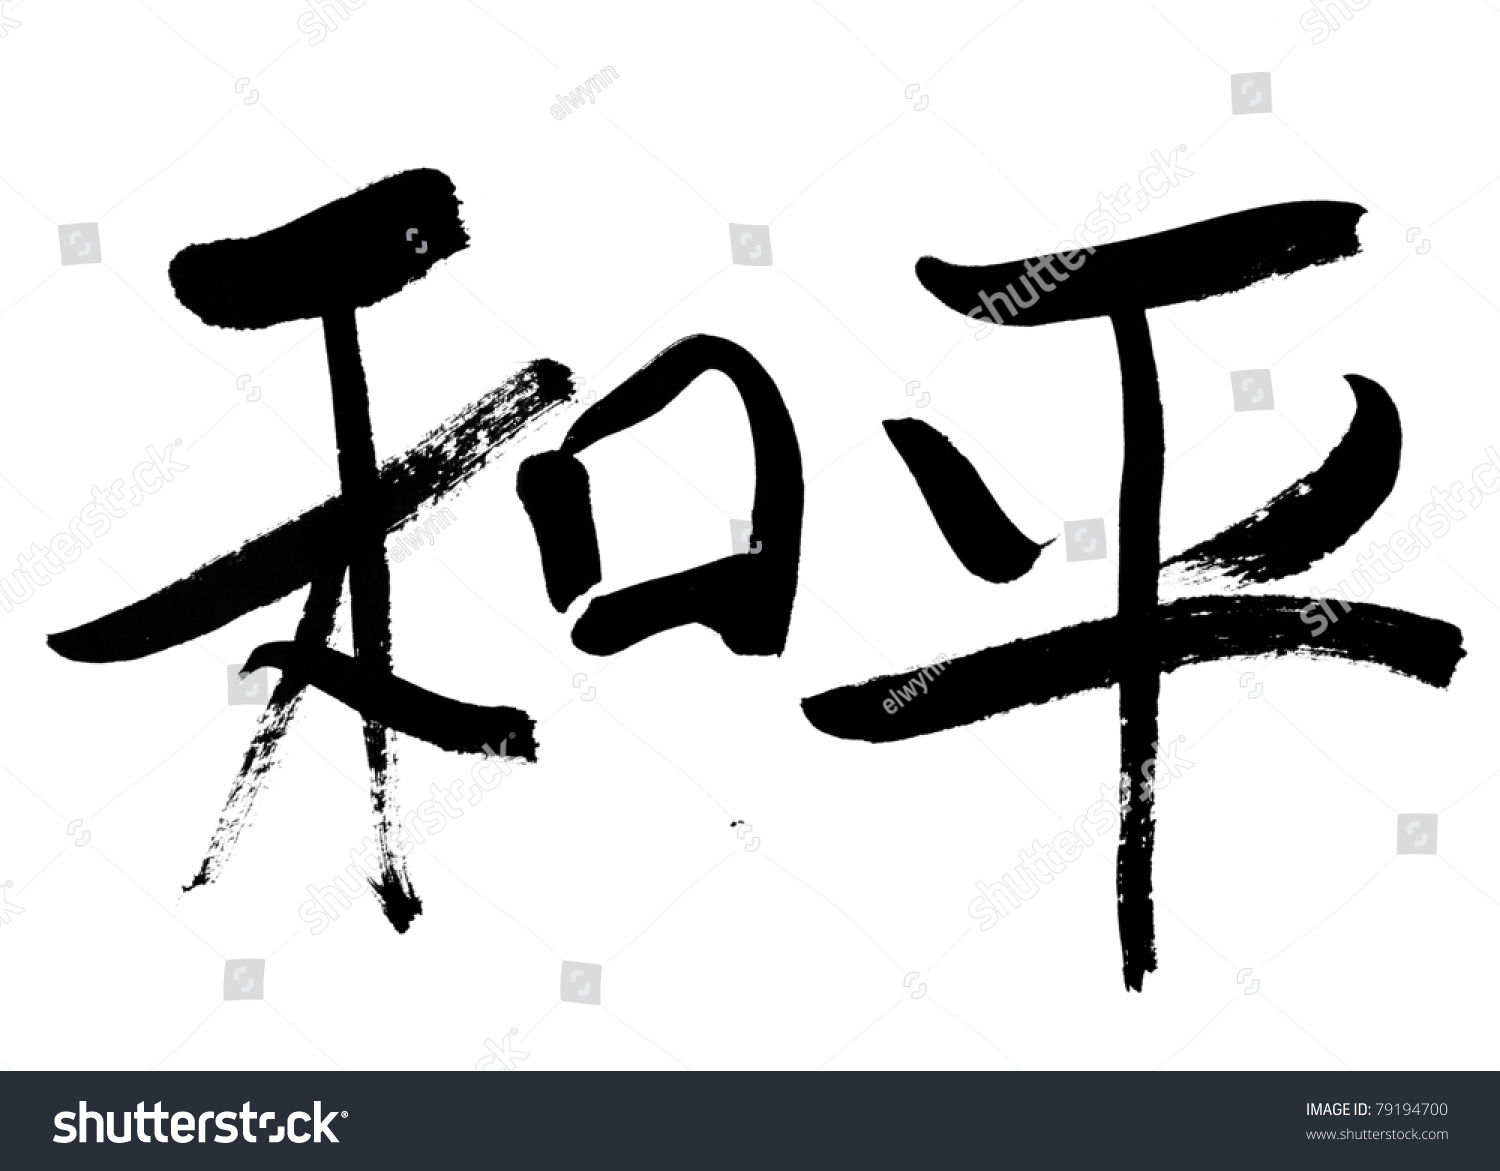 Peace traditional chinese calligraphy art isolated stock photo peace traditional chinese calligraphy art isolated on white background buycottarizona Choice Image